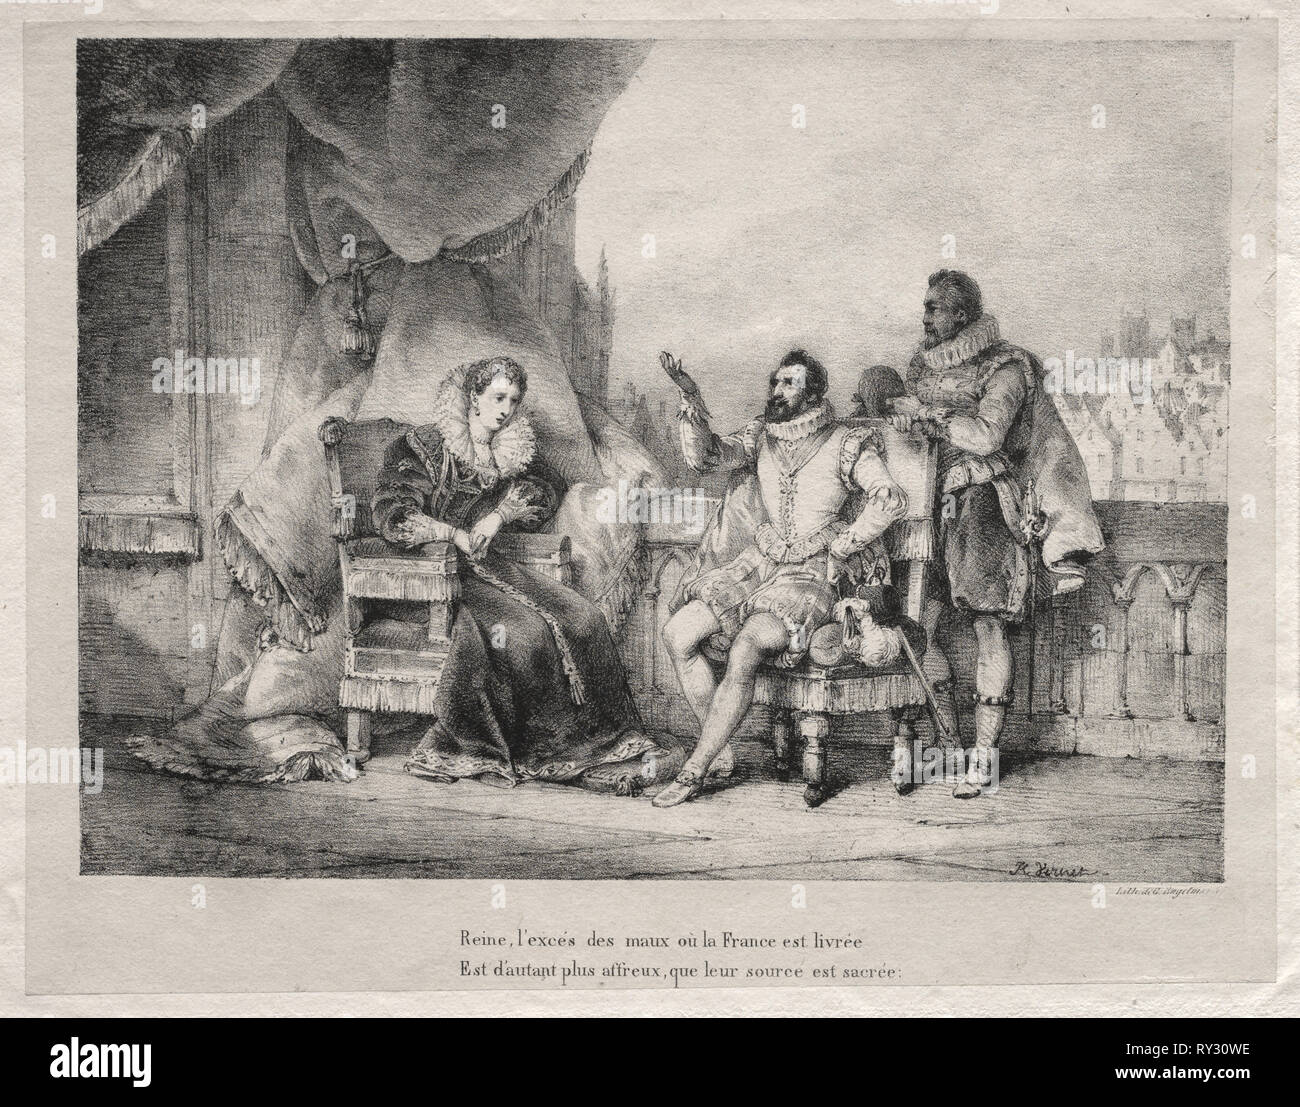 Marie de Medici and Henry IV of France. Horace Vernet (French, 1789-1863). Lithograph - Stock Image